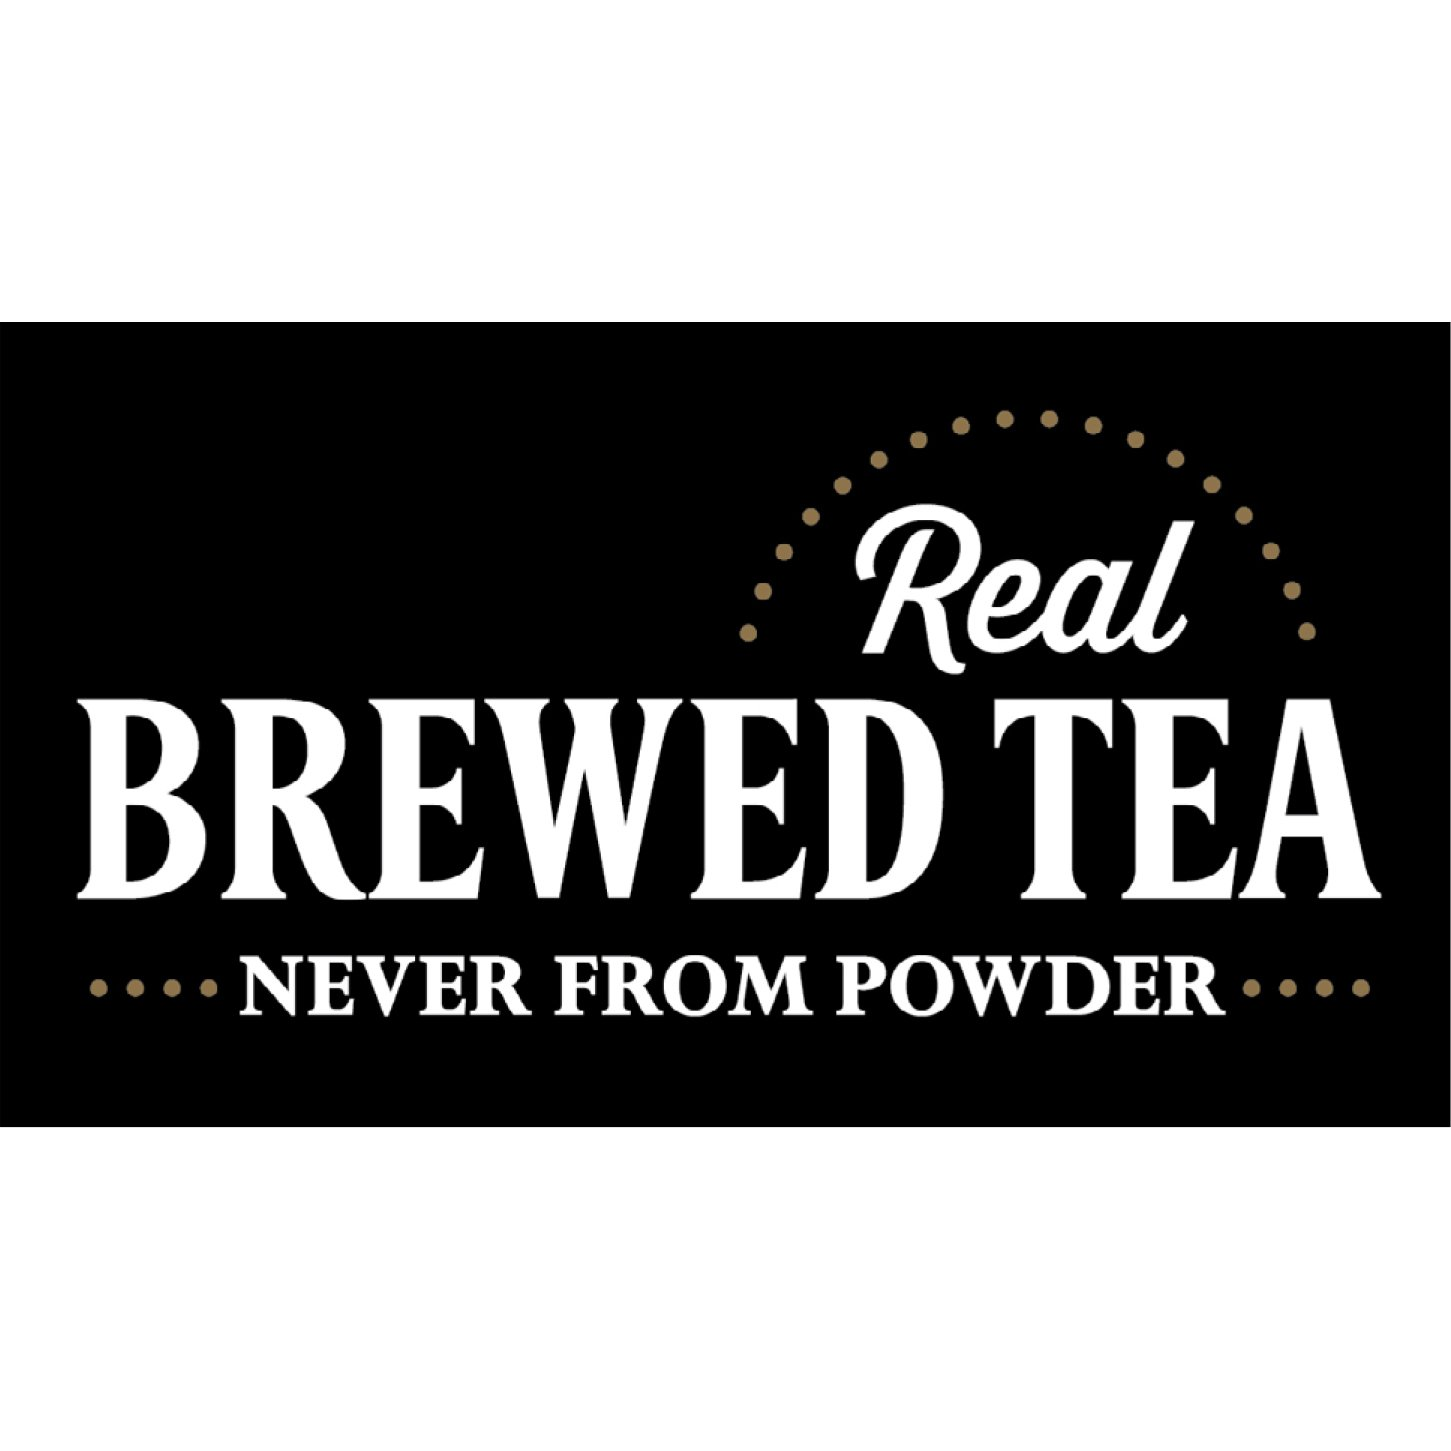 Pure Leaf Iced Tea, Unsweetened, Real Brewed Black Tea, 0 Calories, 18.5 Ounce (Pack of 12) by Pure Leaf (Image #7)